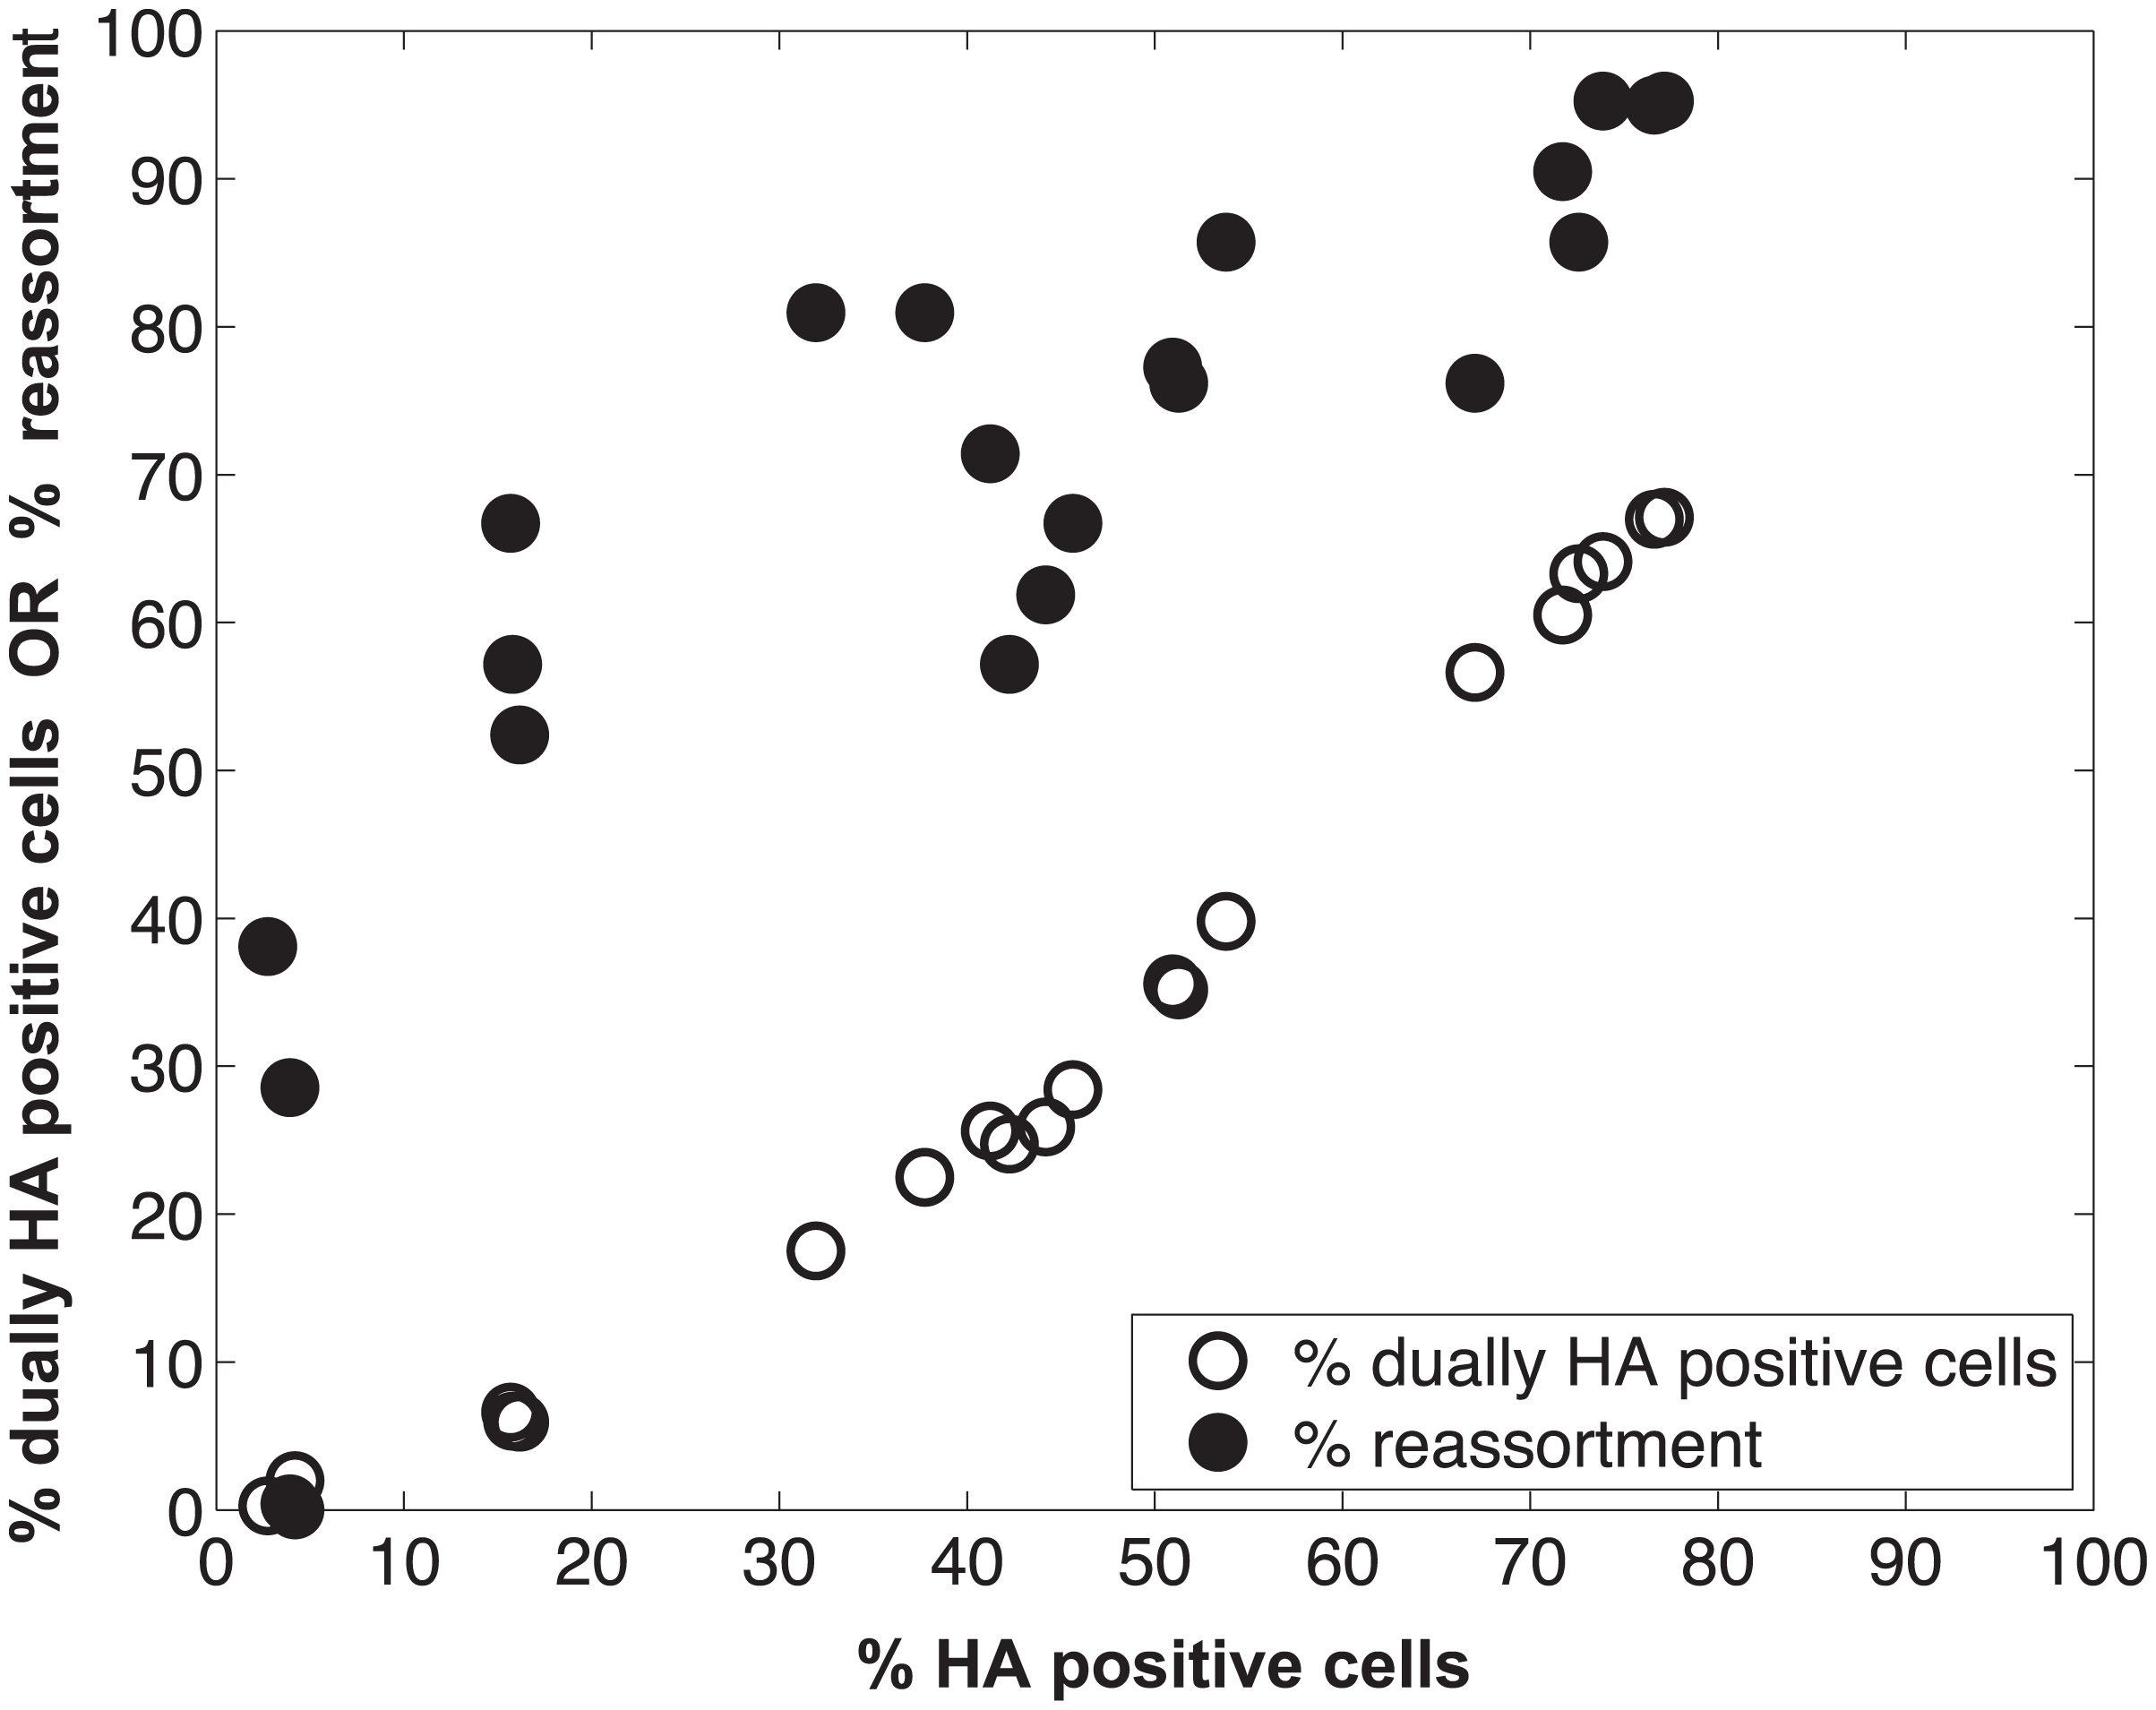 Measurement of HA positive cells, dually HA positive cells and reassortment following co-infection of MDCK cells with Pan/99wt and Pan/99var viruses.